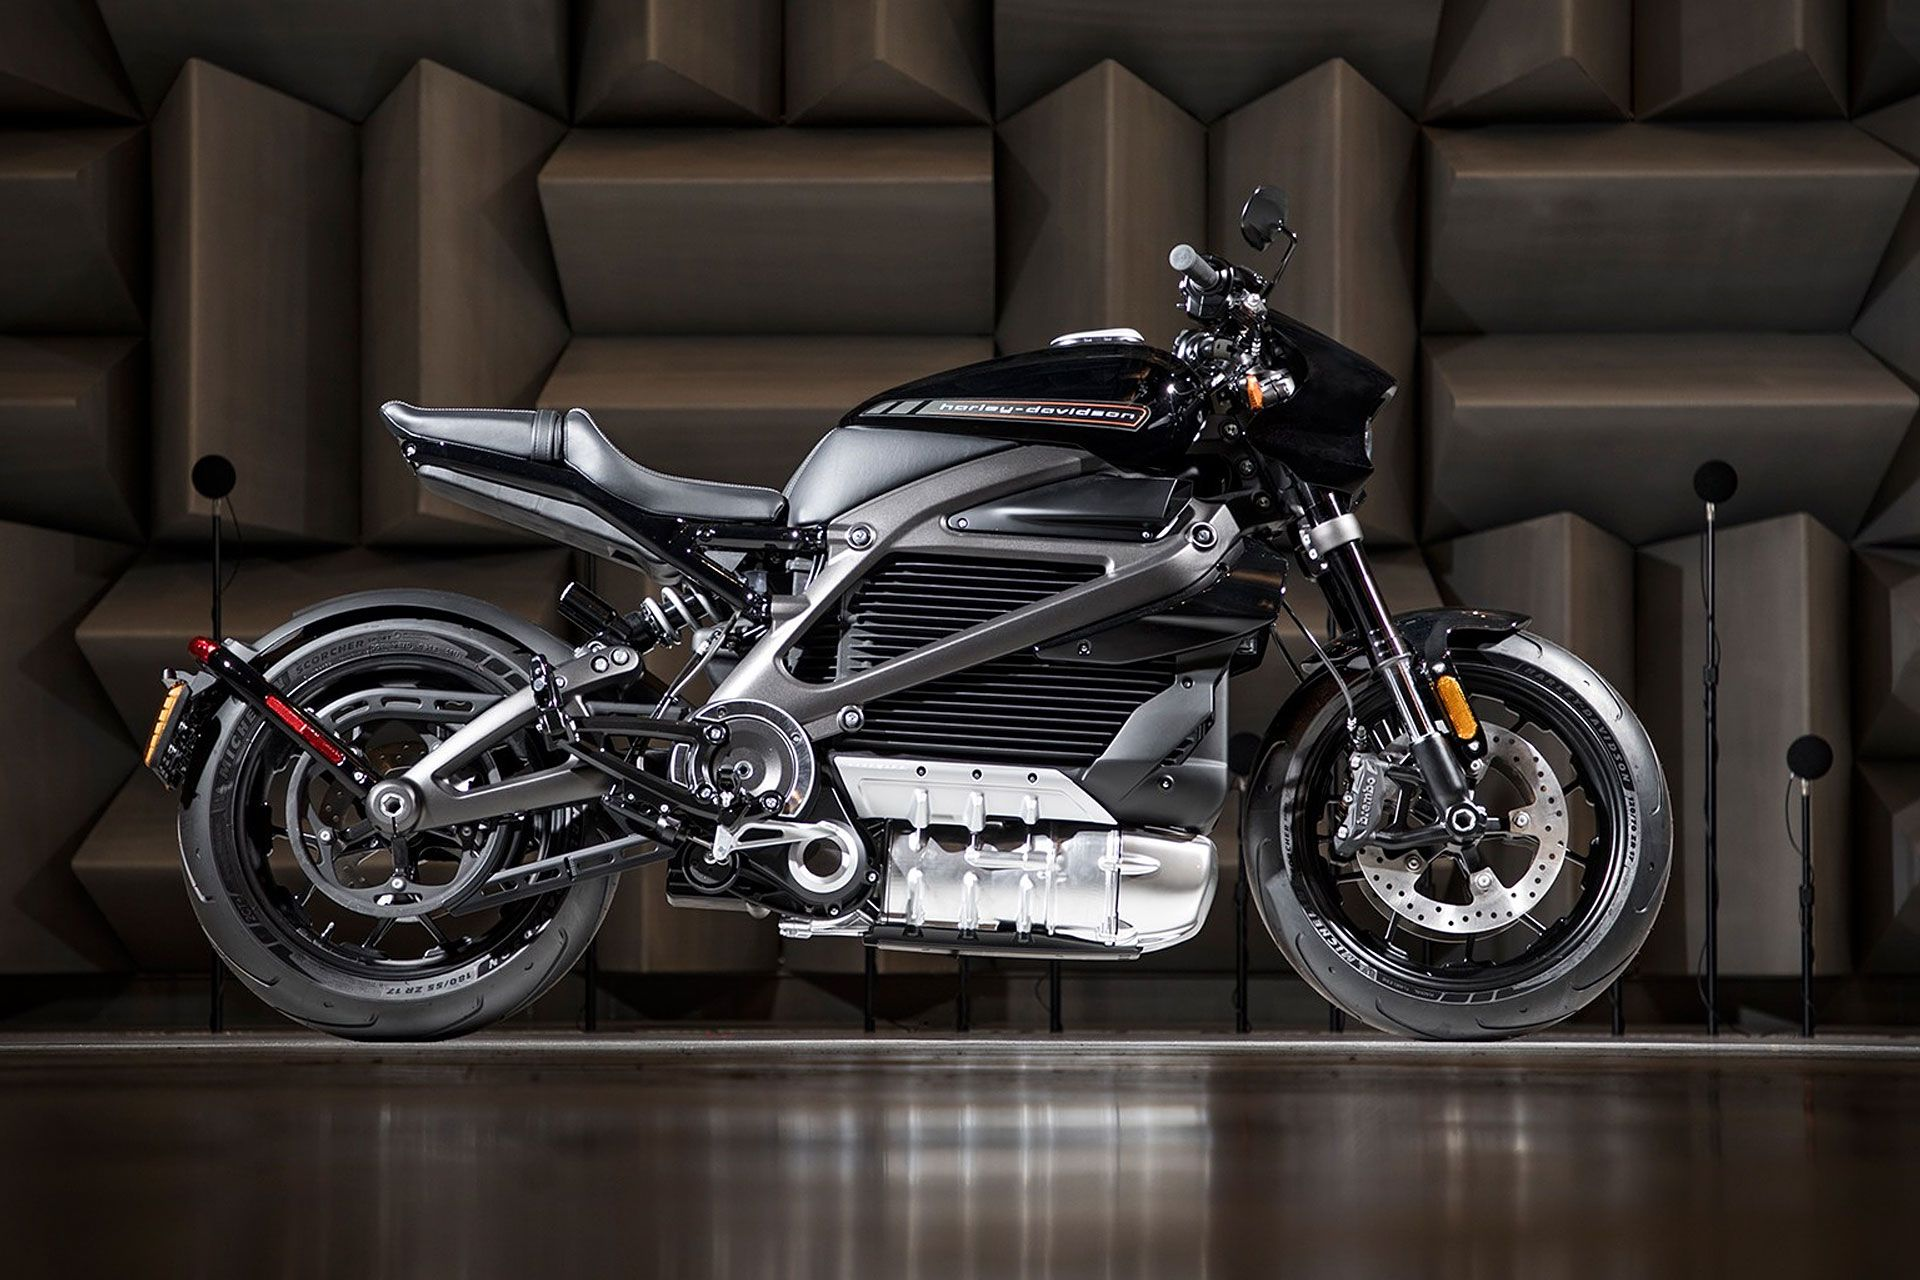 Harley Davidson Livewire Electric Motorcycle Harley Davidson Model Harley Davidson Dyna Harley Davidson Crafts